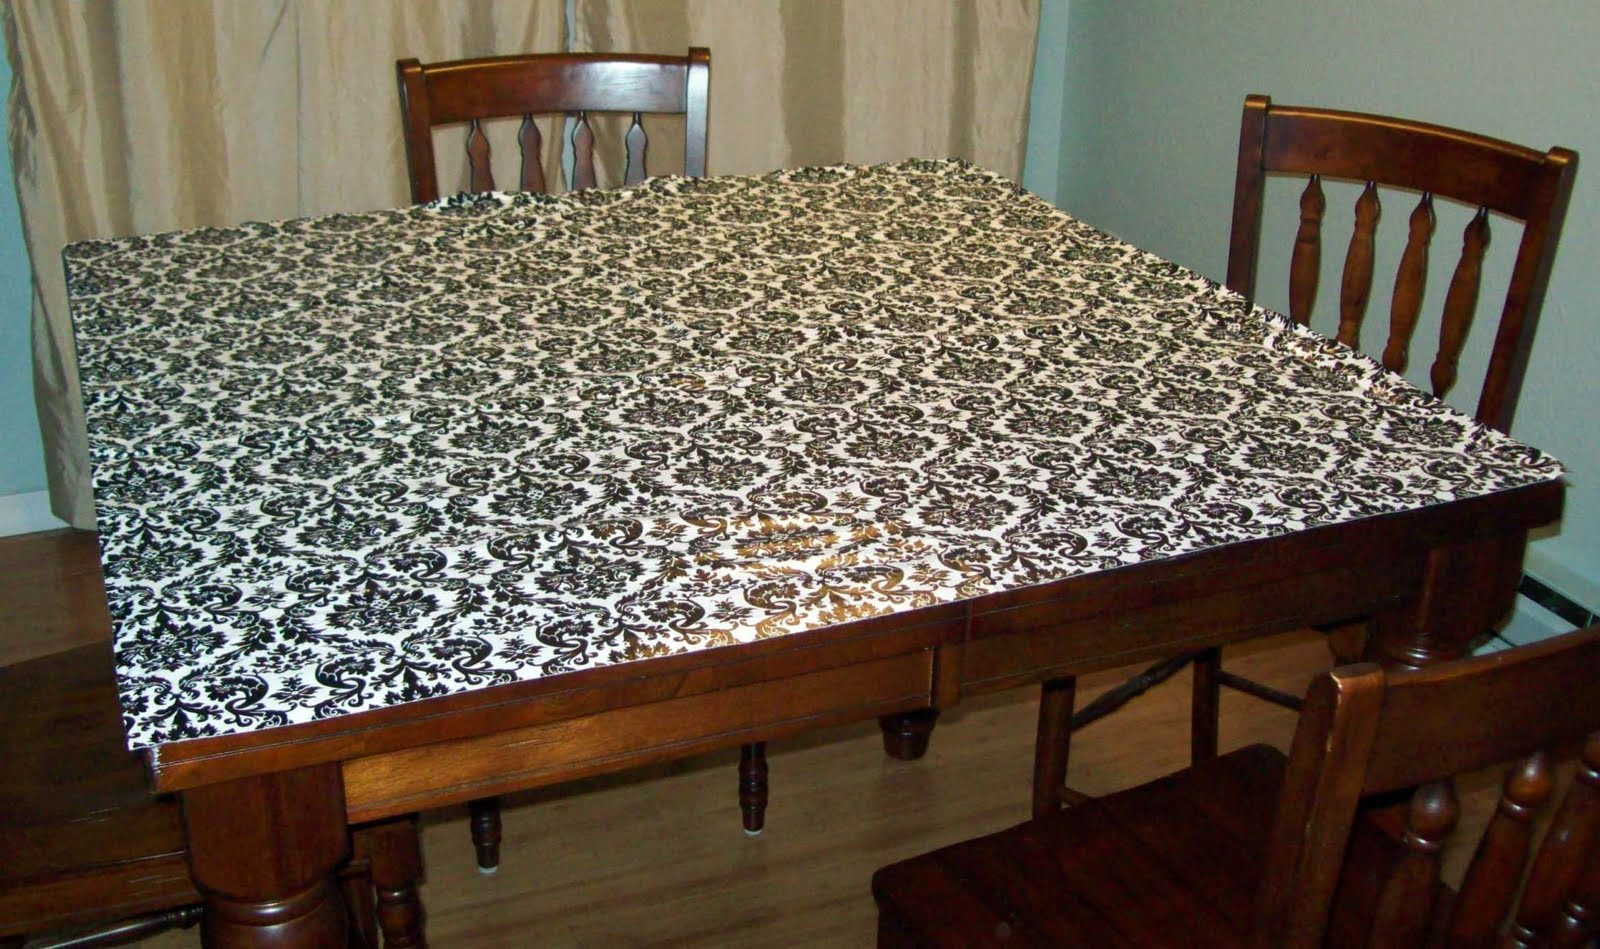 Running With Scissors Fitted Simple Tablecloth : 1033330 from www.running-w-scissors.com size 1600 x 949 jpeg 282kB